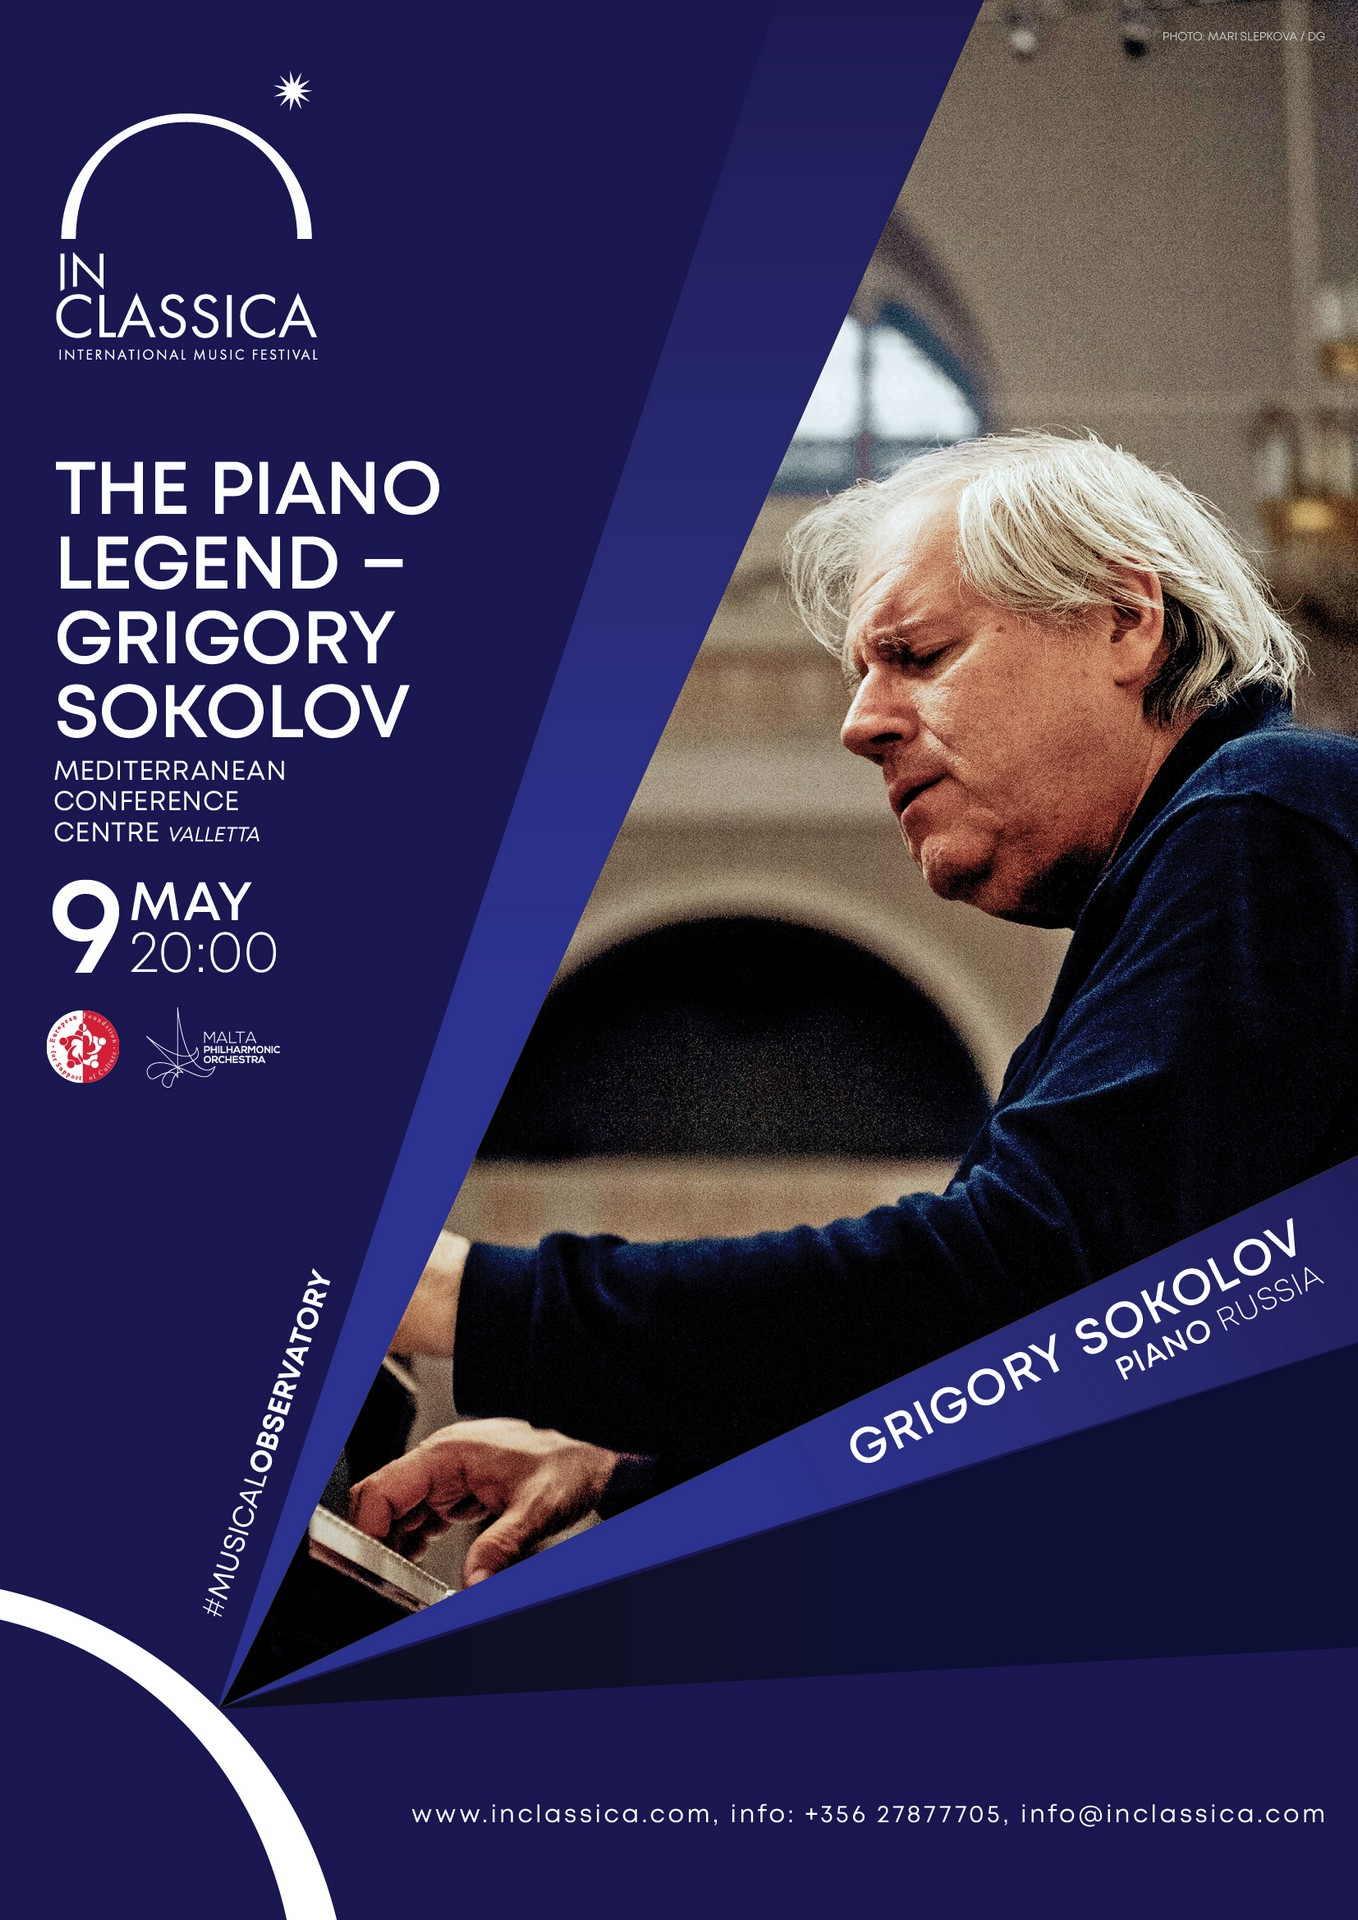 THE PIANO LEGEND – GRIGORY SOKOLOV flyer